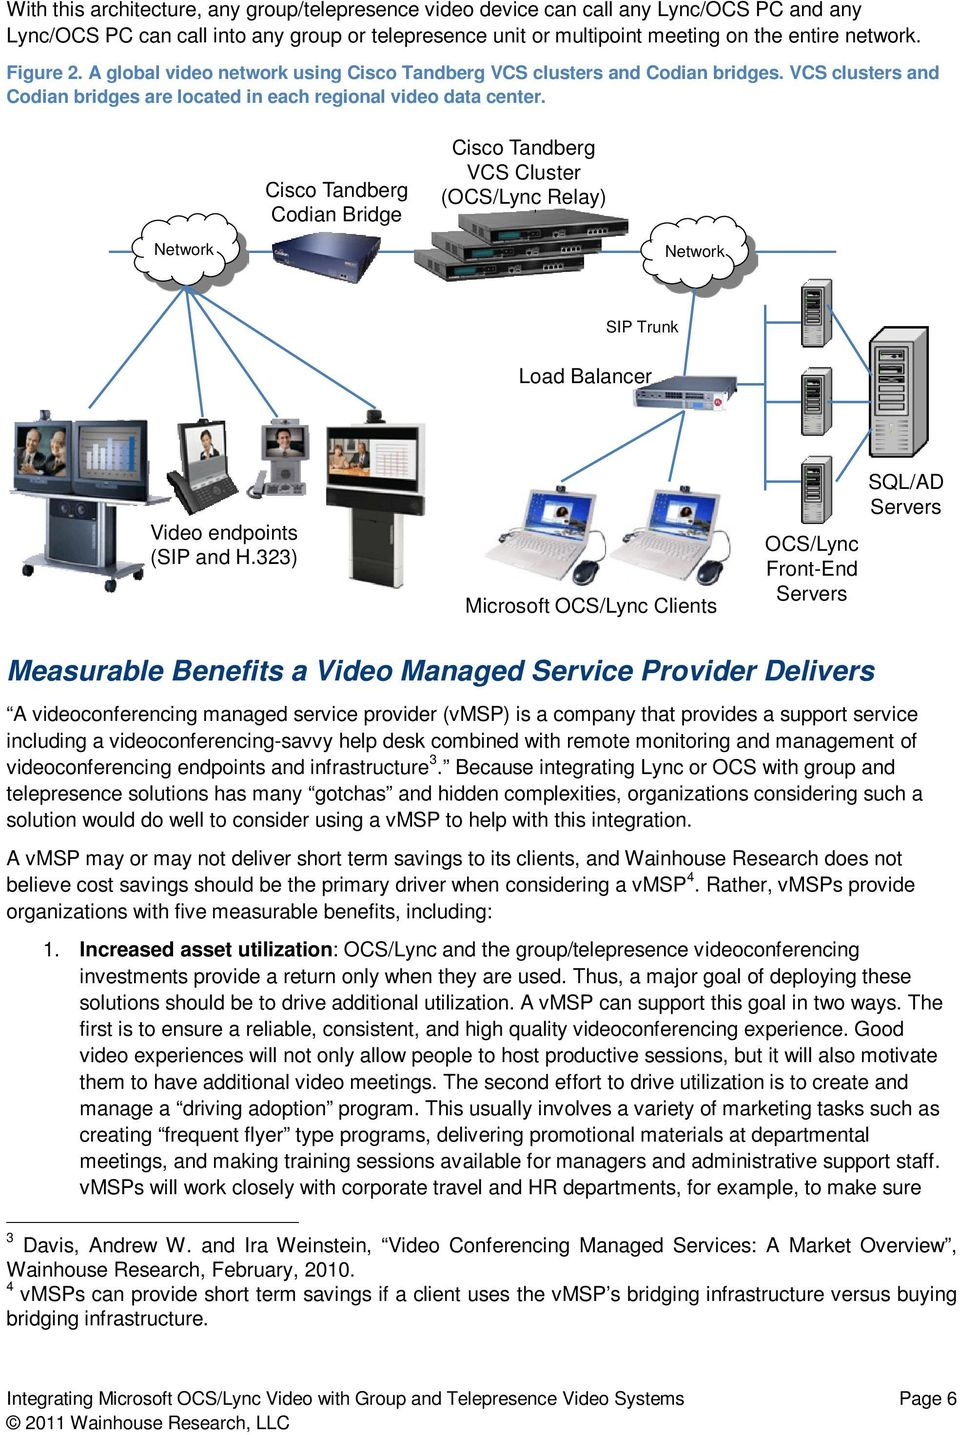 Network Cisco Tandberg Codian Bridge Cisco Tandberg VCS Cluster (OCS/Lync Relay) Network SIP Trunk Load Balancer Video endpoints (SIP and H.